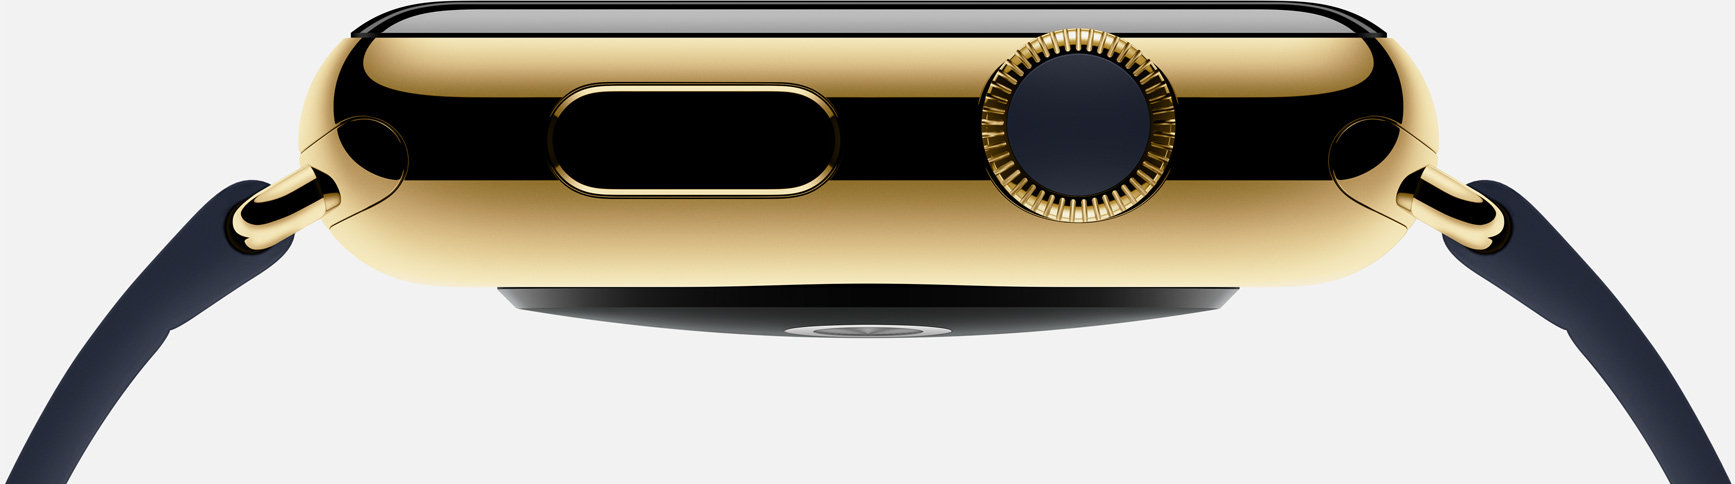 https://www.apple.com/v/watch/a/apple-watch-edition/images/hero_large.jpg